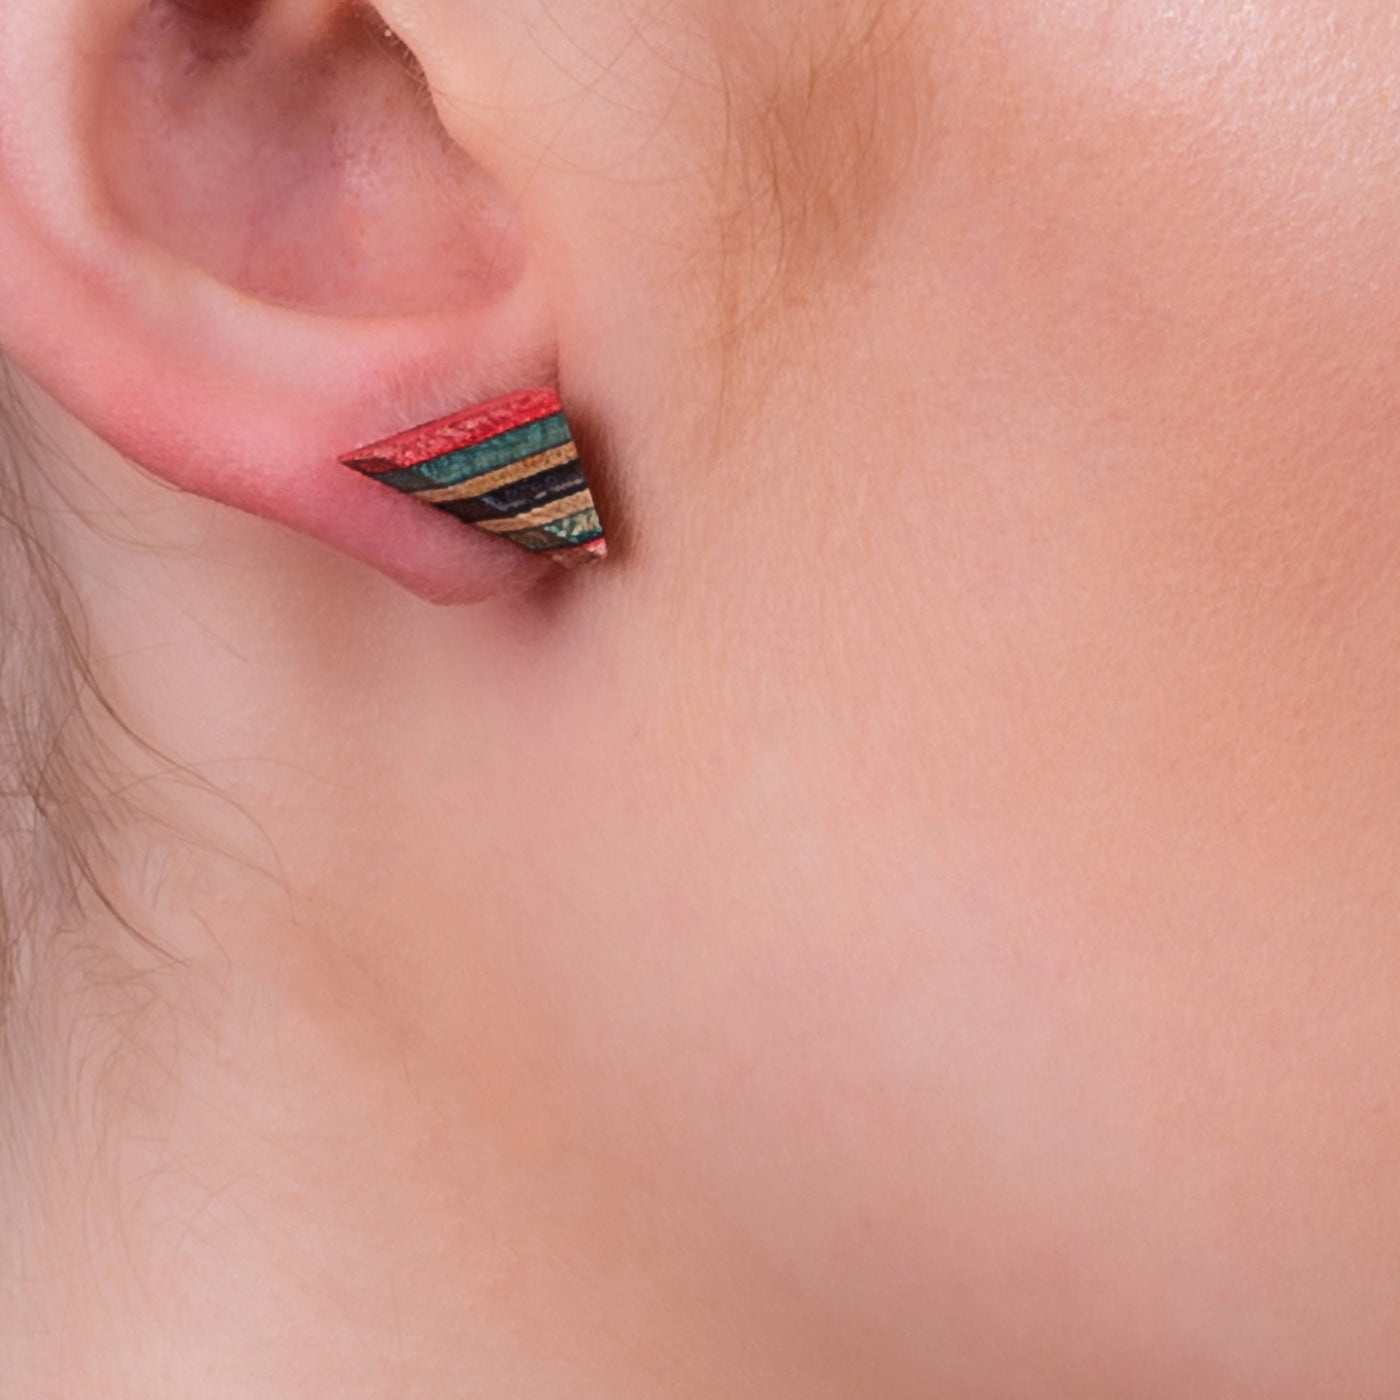 Elbow Recycled Skateboard Stud Earrings